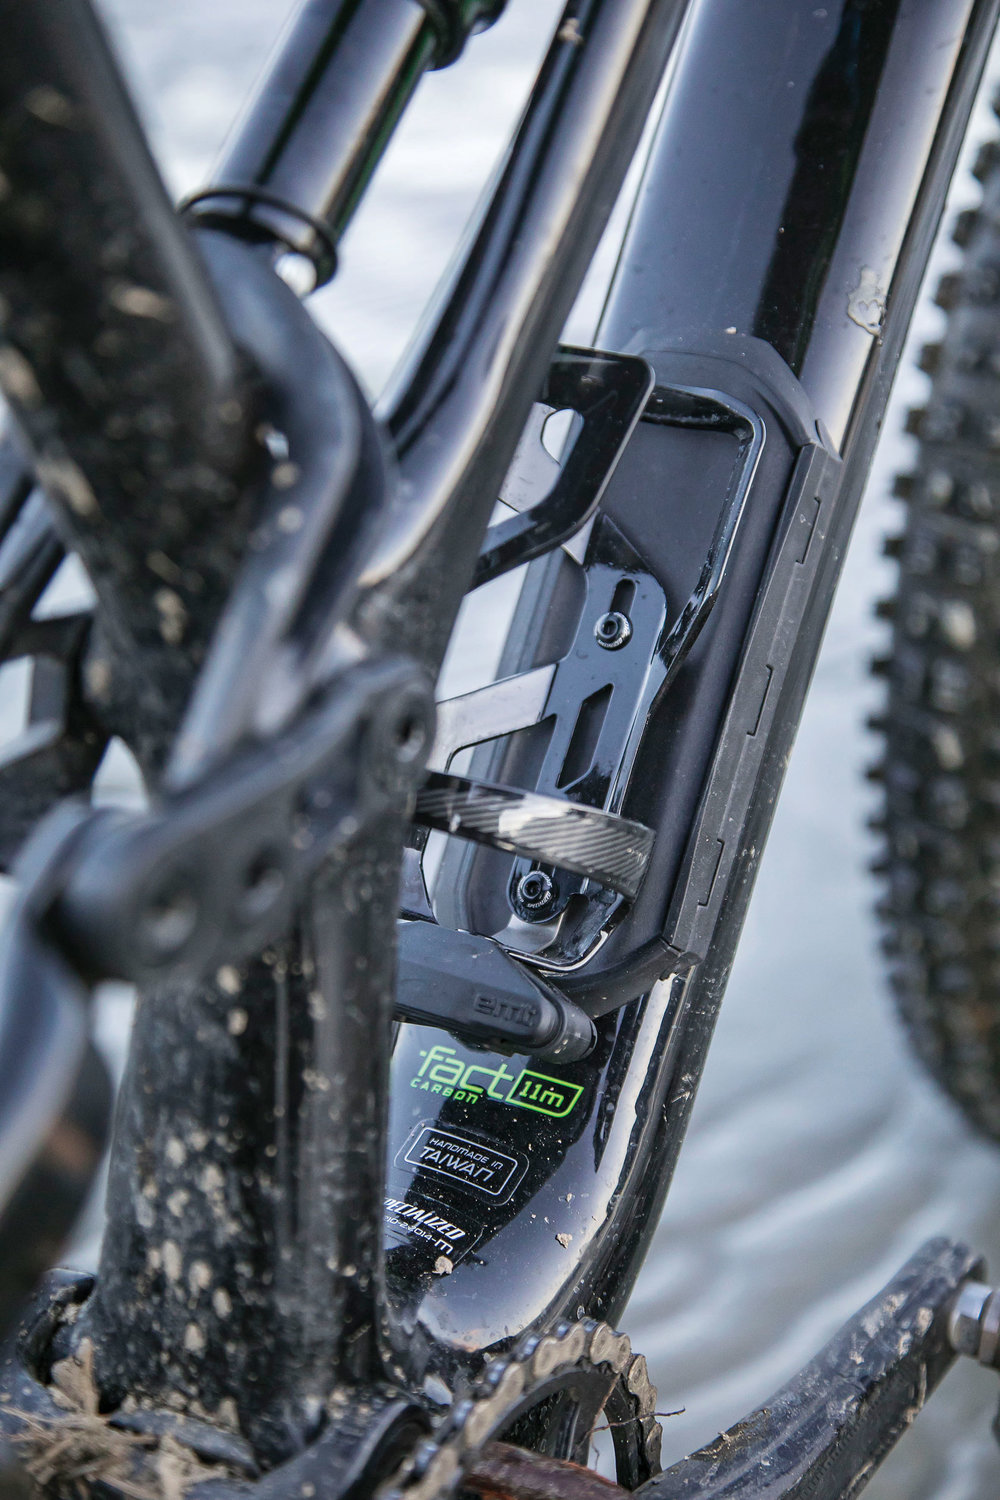 Specialized's clever SWAT system is clean, simple and hassle-free.